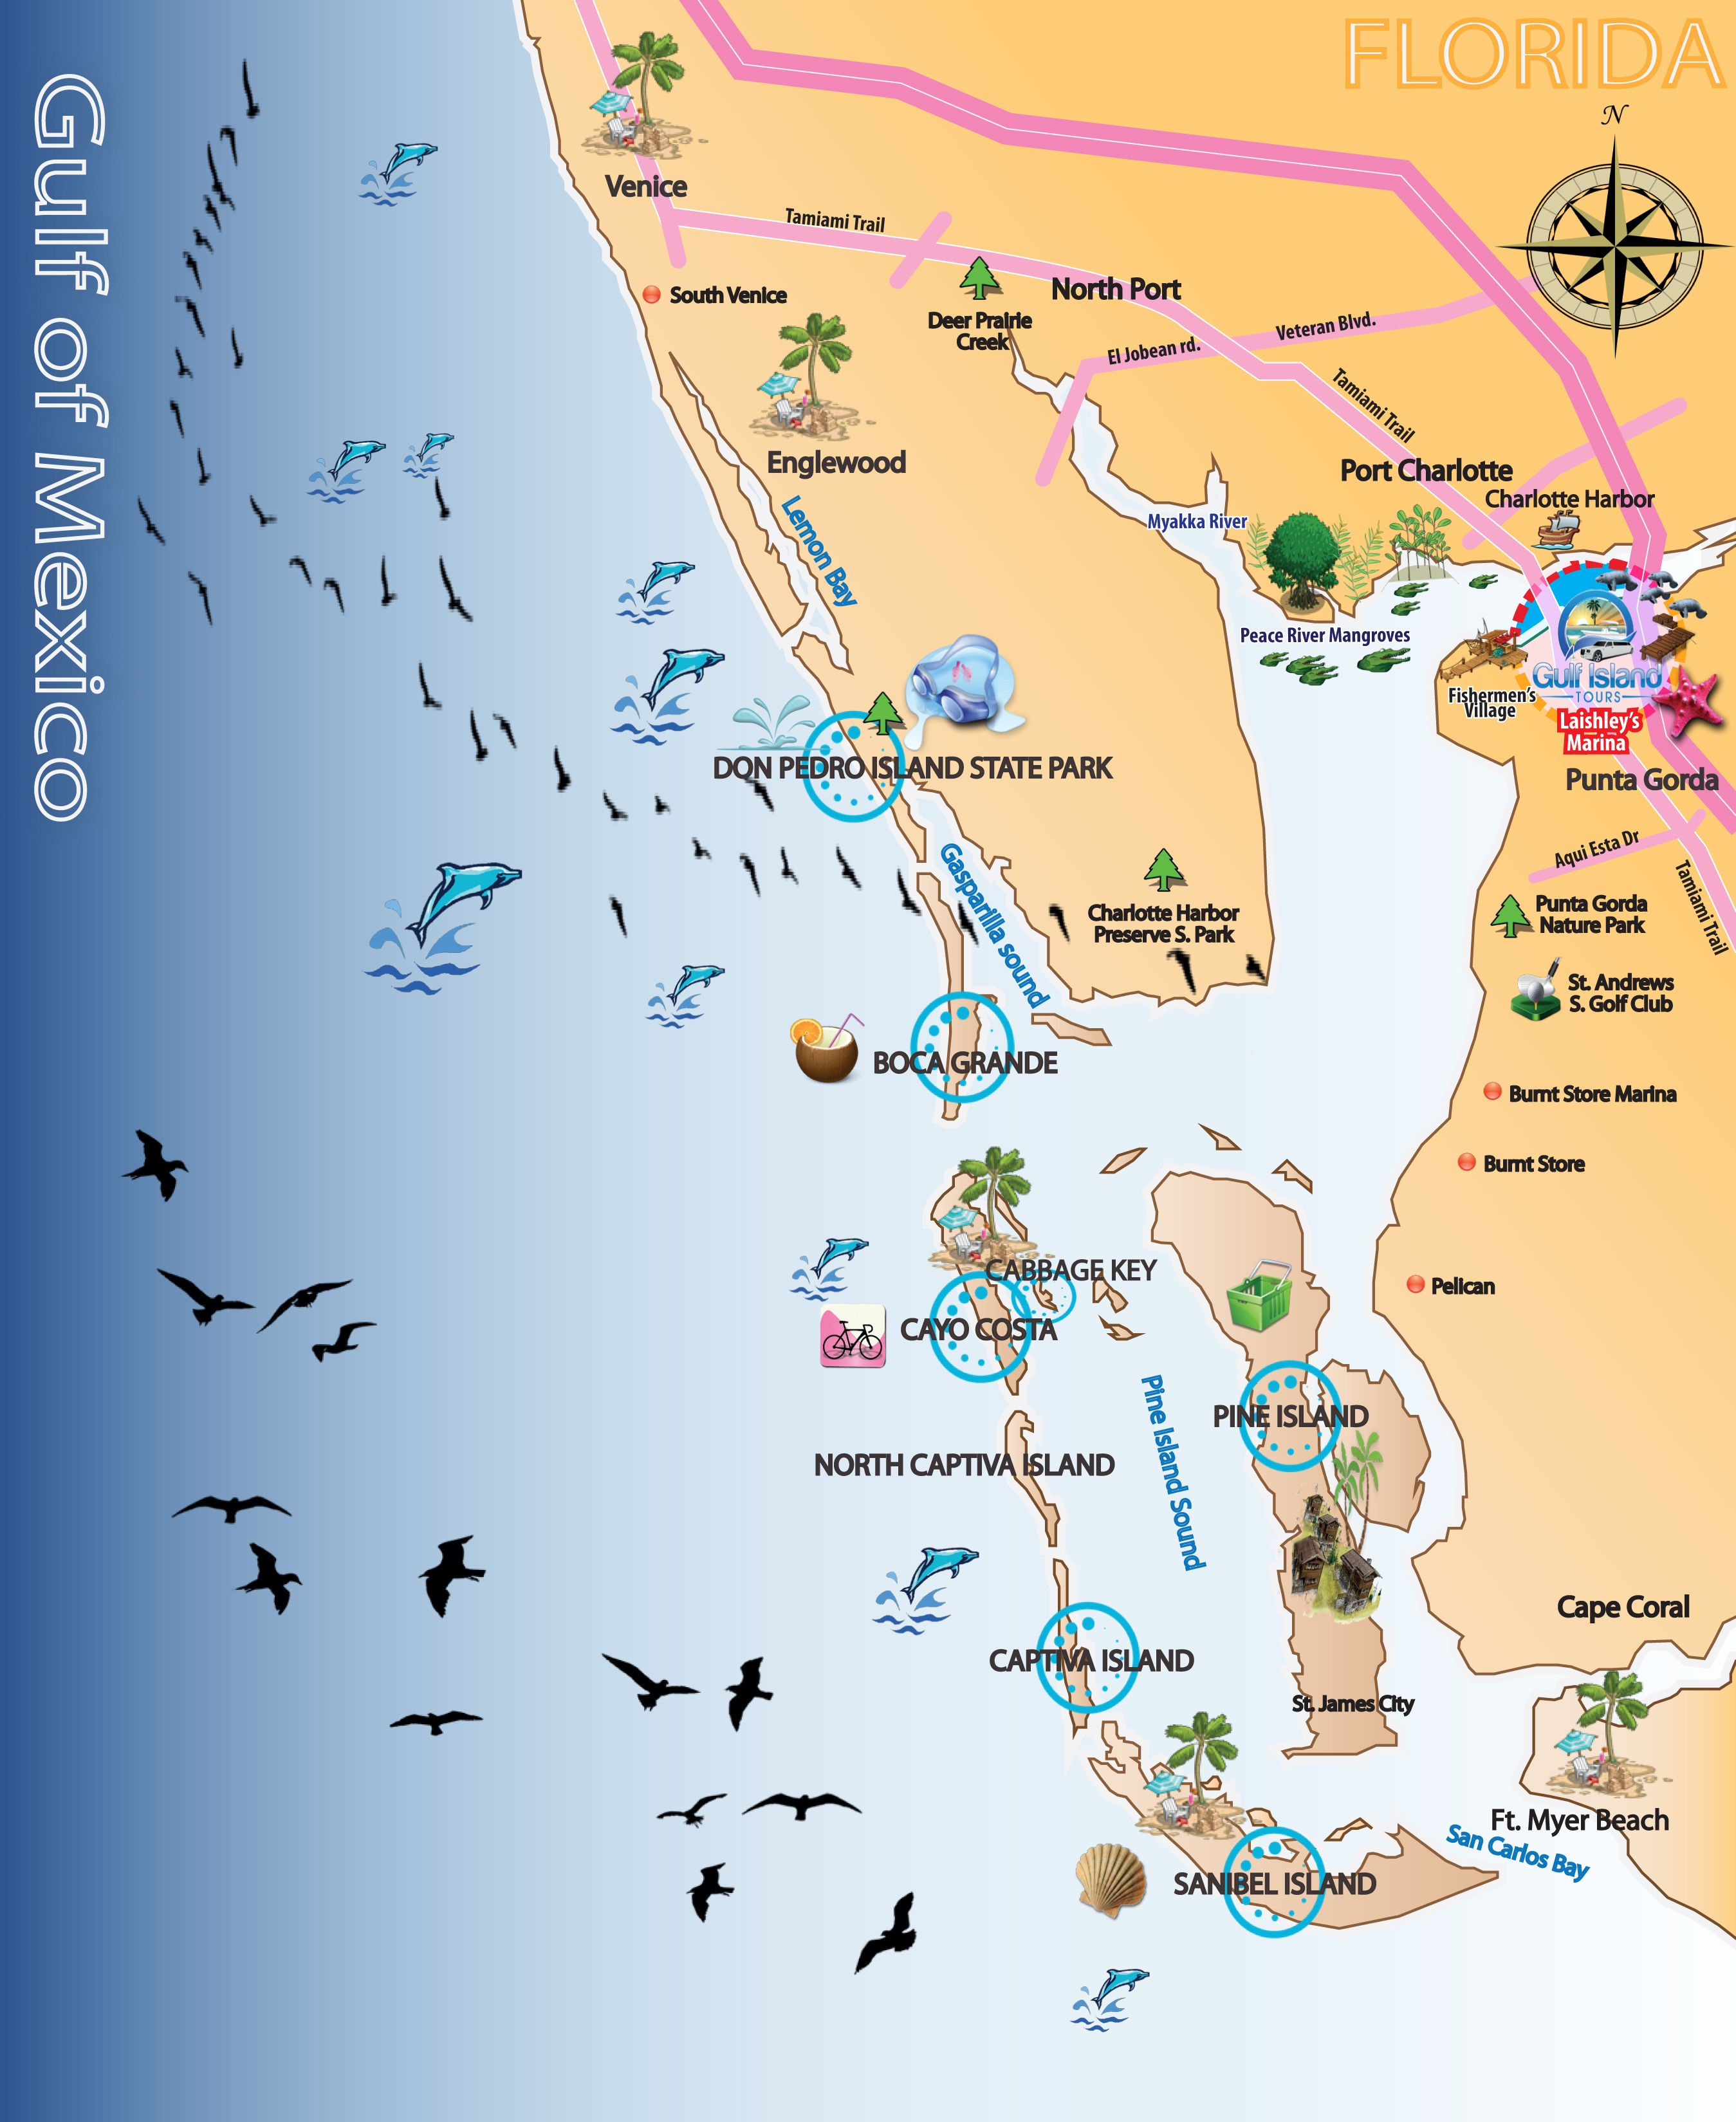 Map Out Your Next Vacation In The Florida Gulf! | Gulf Island Tours - Map Of Florida Vacation Spots